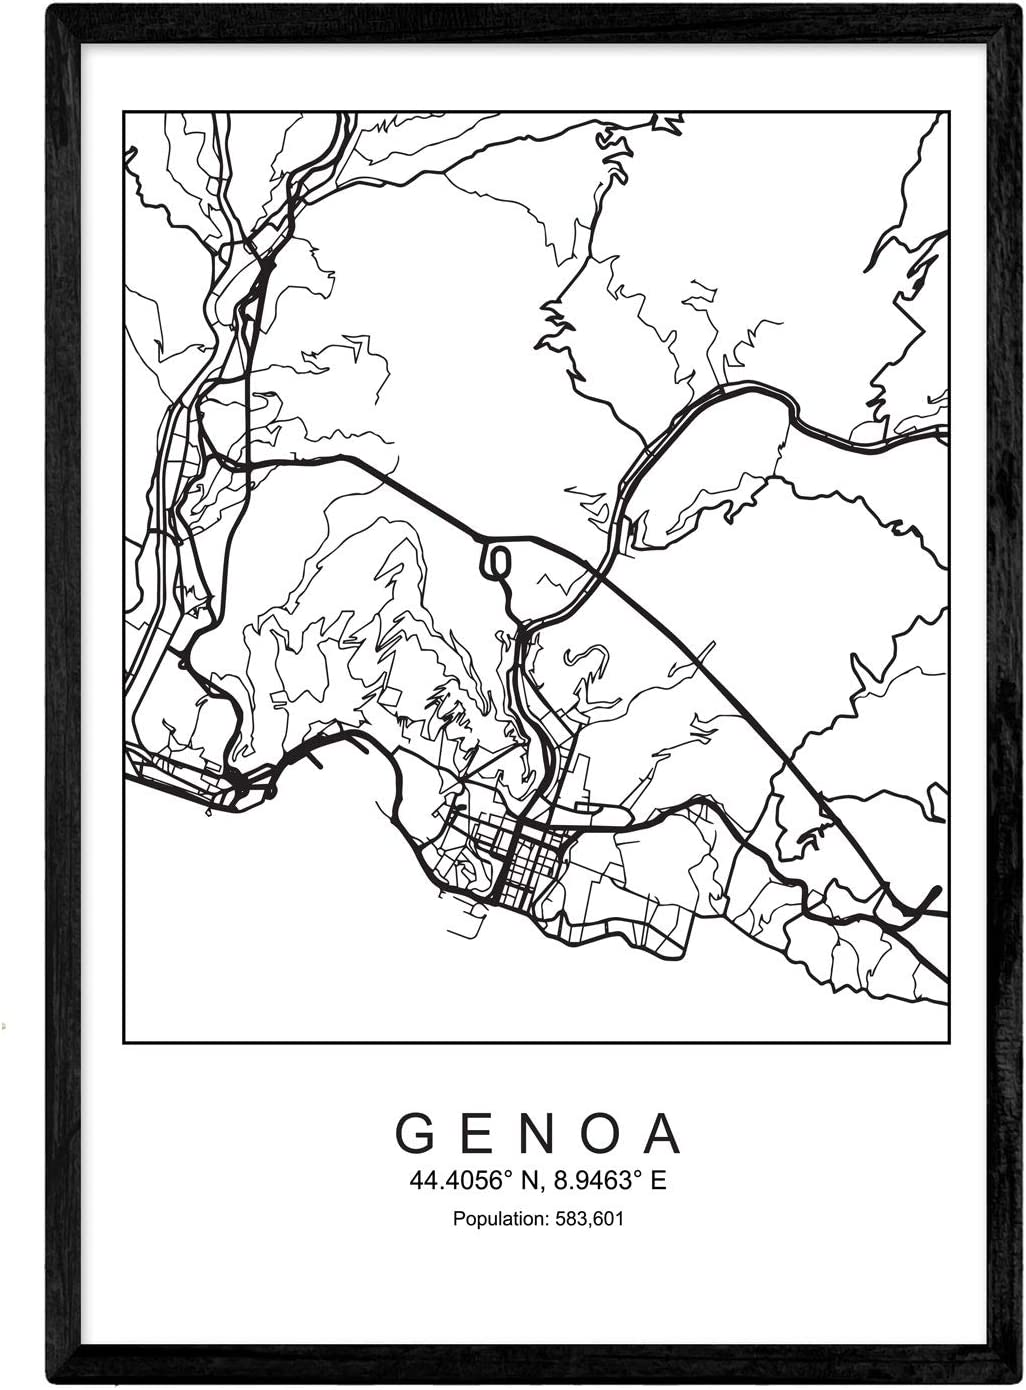 Nacnic Prints Genoa City Map Nordic Style - Set of 1 - Unframed 11x17 inch Size - 250g Paper - Beautiful Poster Painting for Home Office Living Room